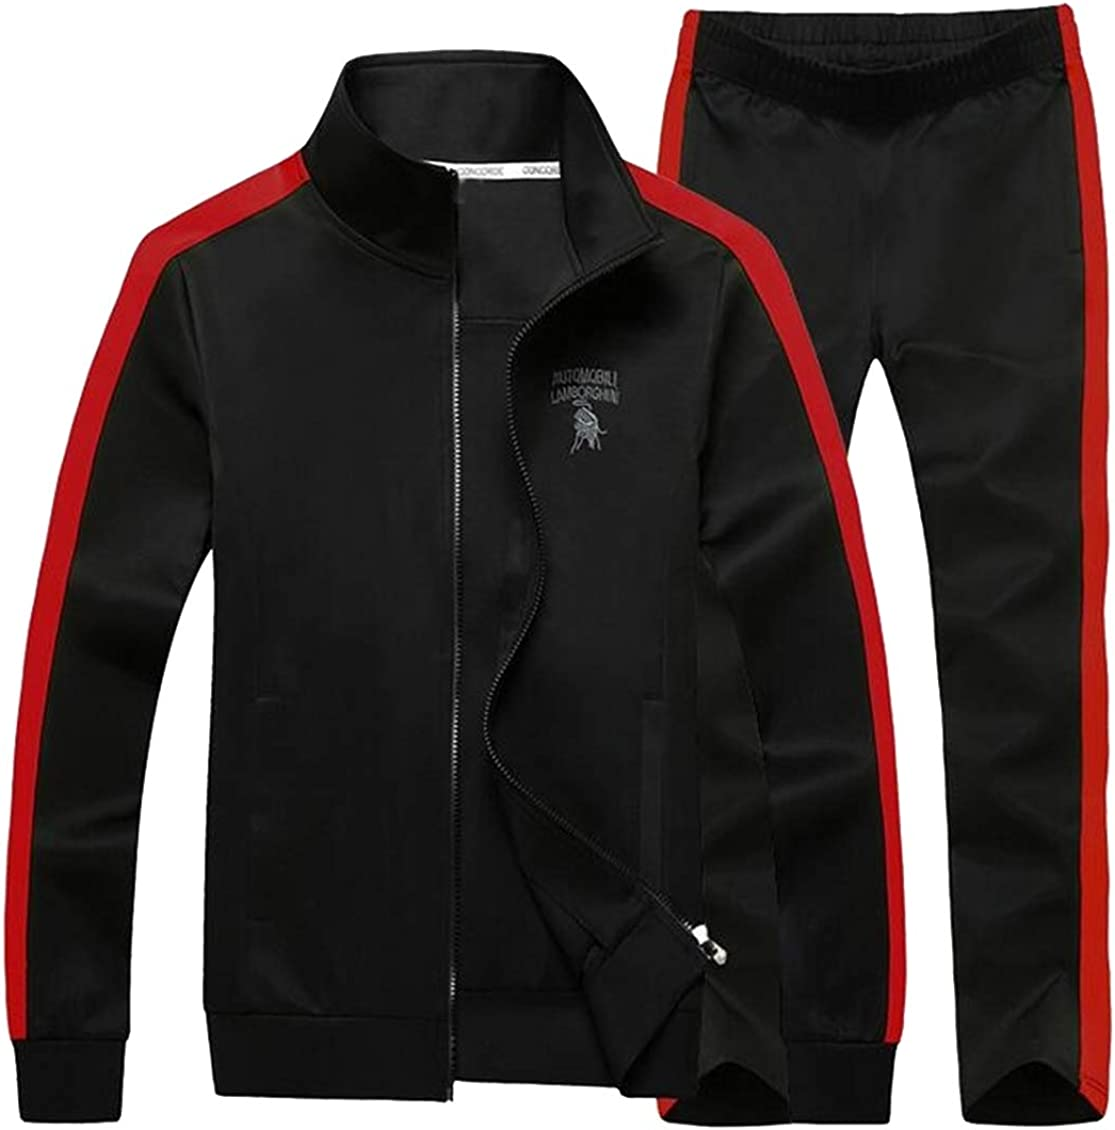 Fensajomon Mens Plus Size Stand Collar Casual Athletic 2 Pieces Suits Jacket /& Pants Outfits Tracksuit Sweatsuits